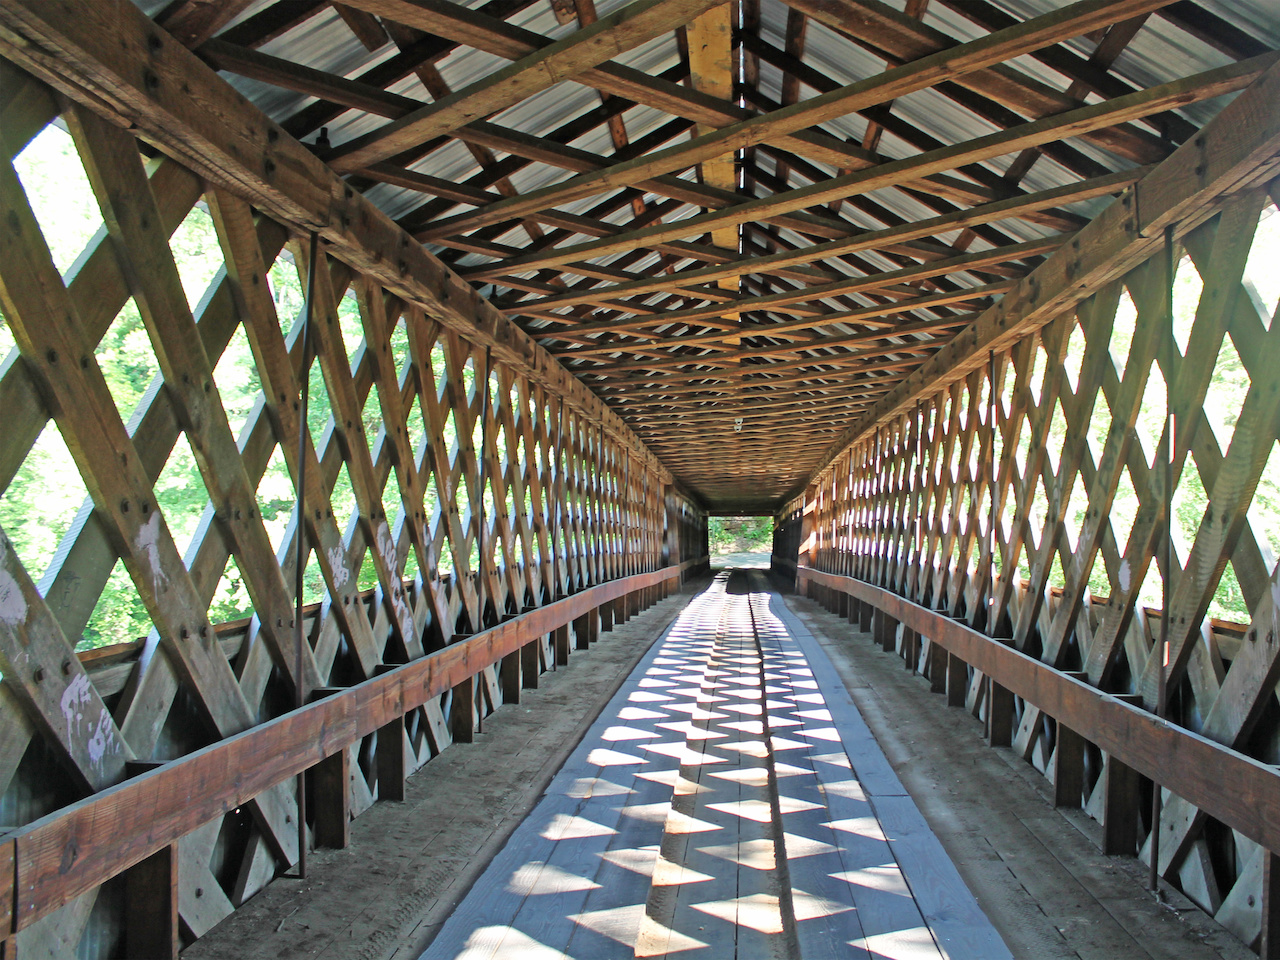 Swann Covered Bridge in Blount County